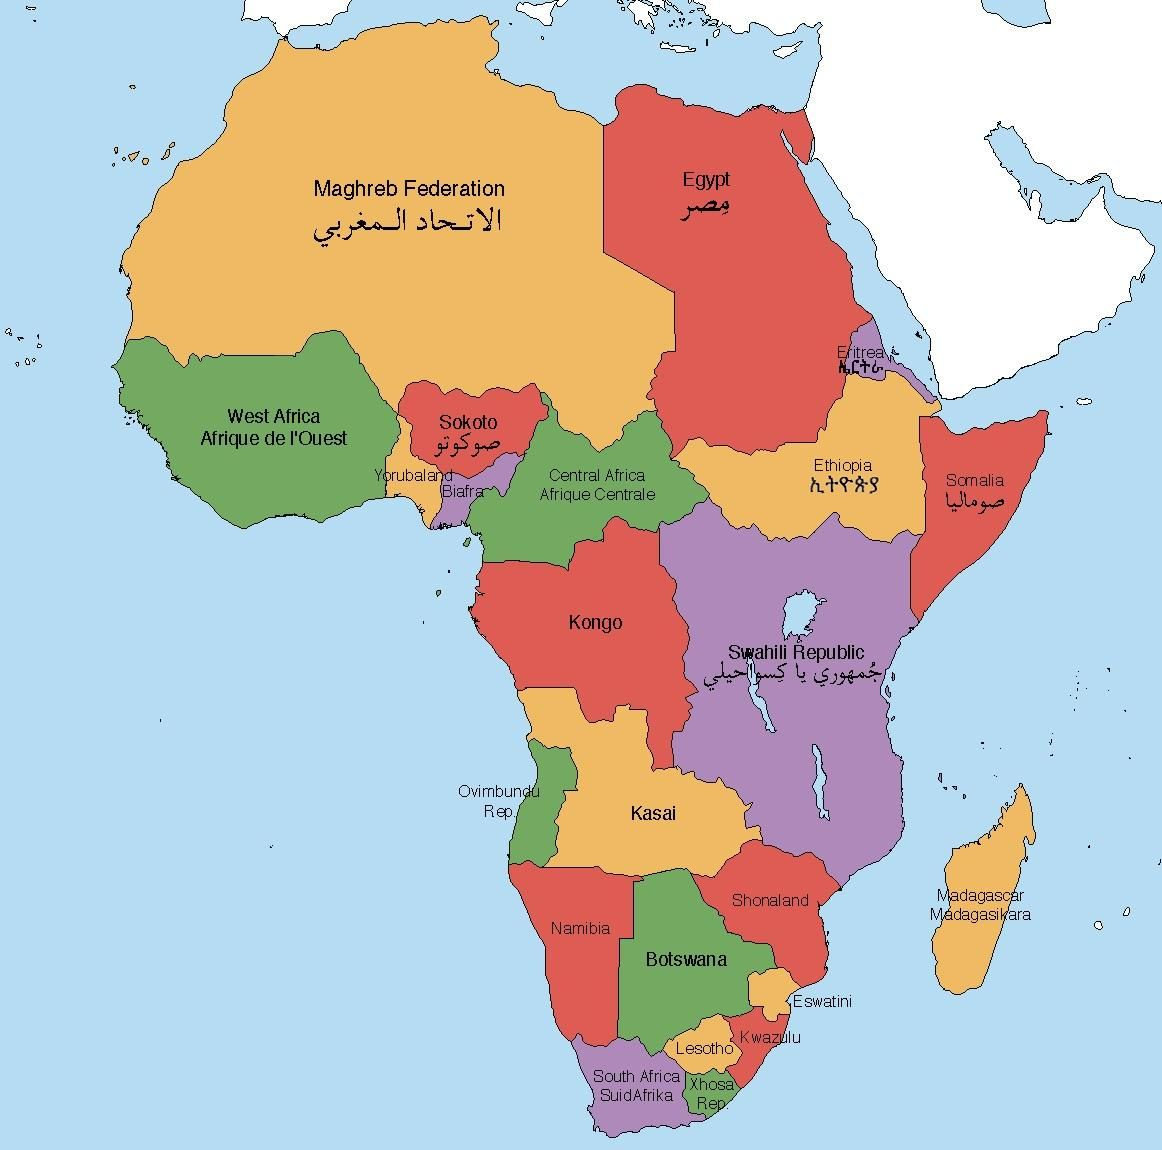 Alternate Africa Map Africa in an Alternate Timeline (i.redd.it) submitted by iemaps to